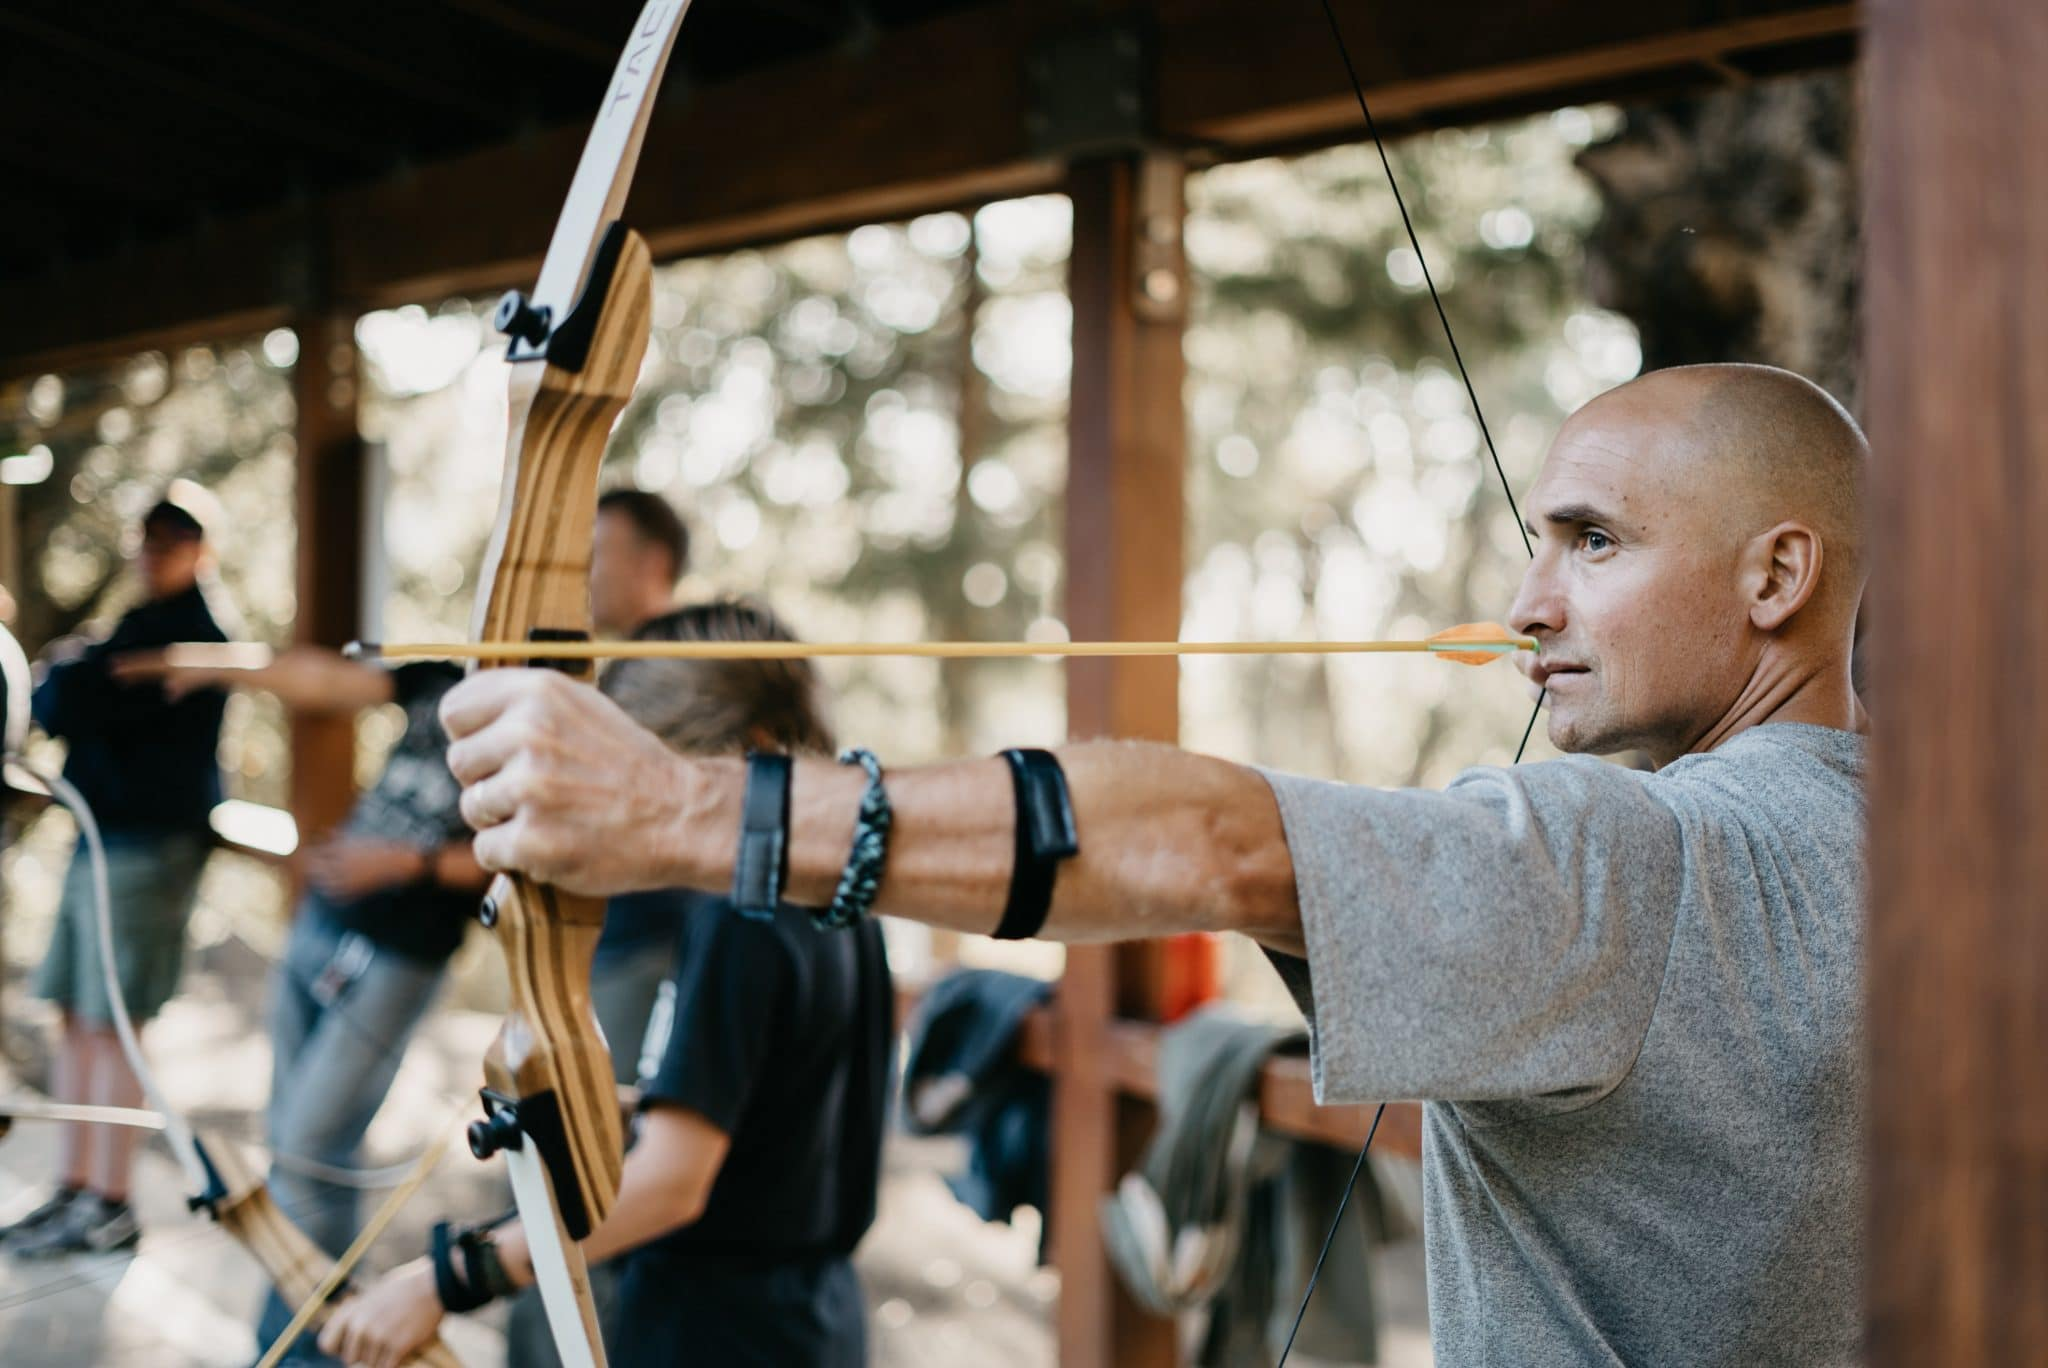 Bald man using a bow and arrow